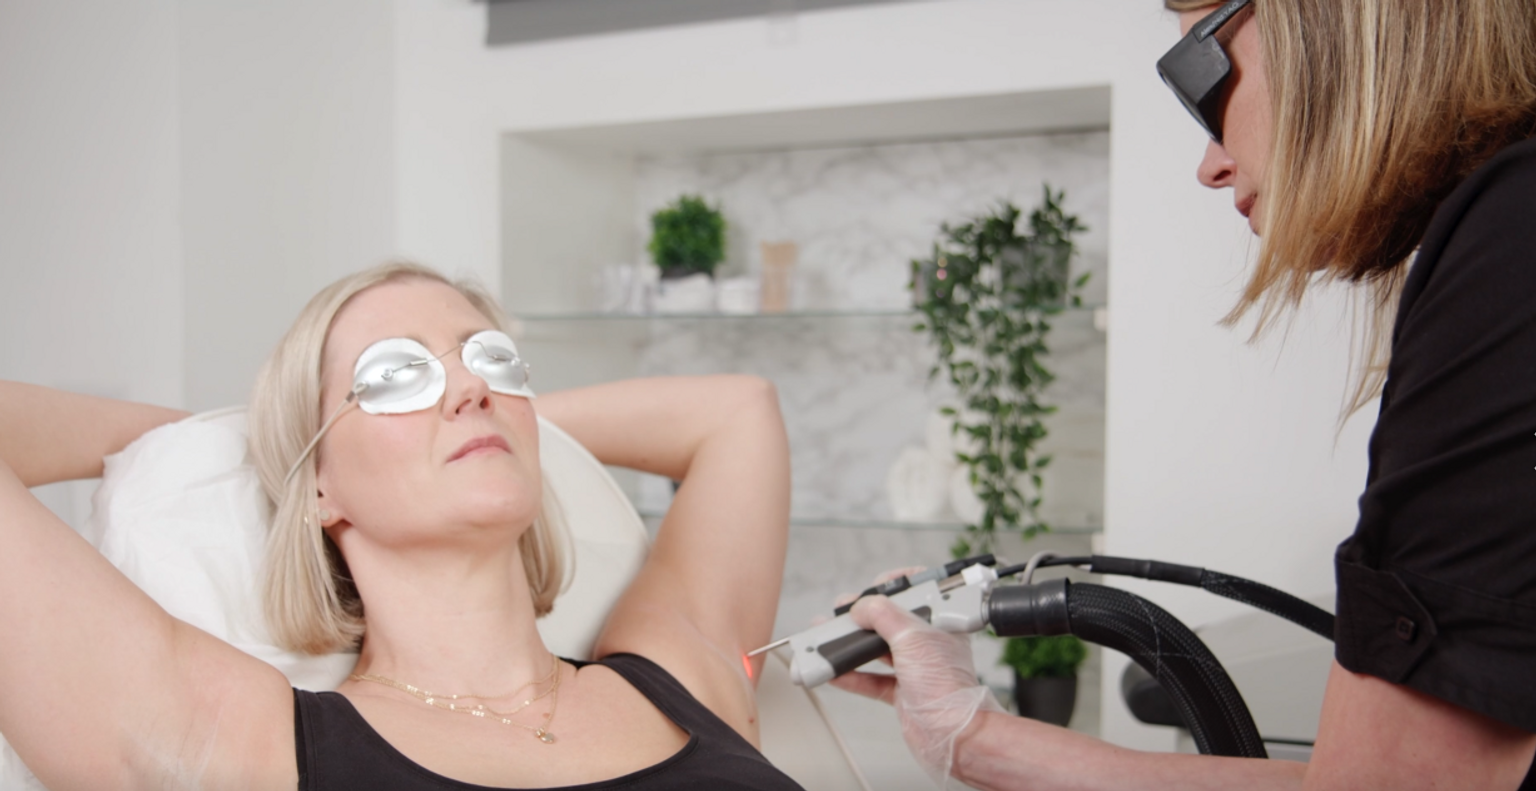 Glowday's Hannah tries out underarm laser hair removal